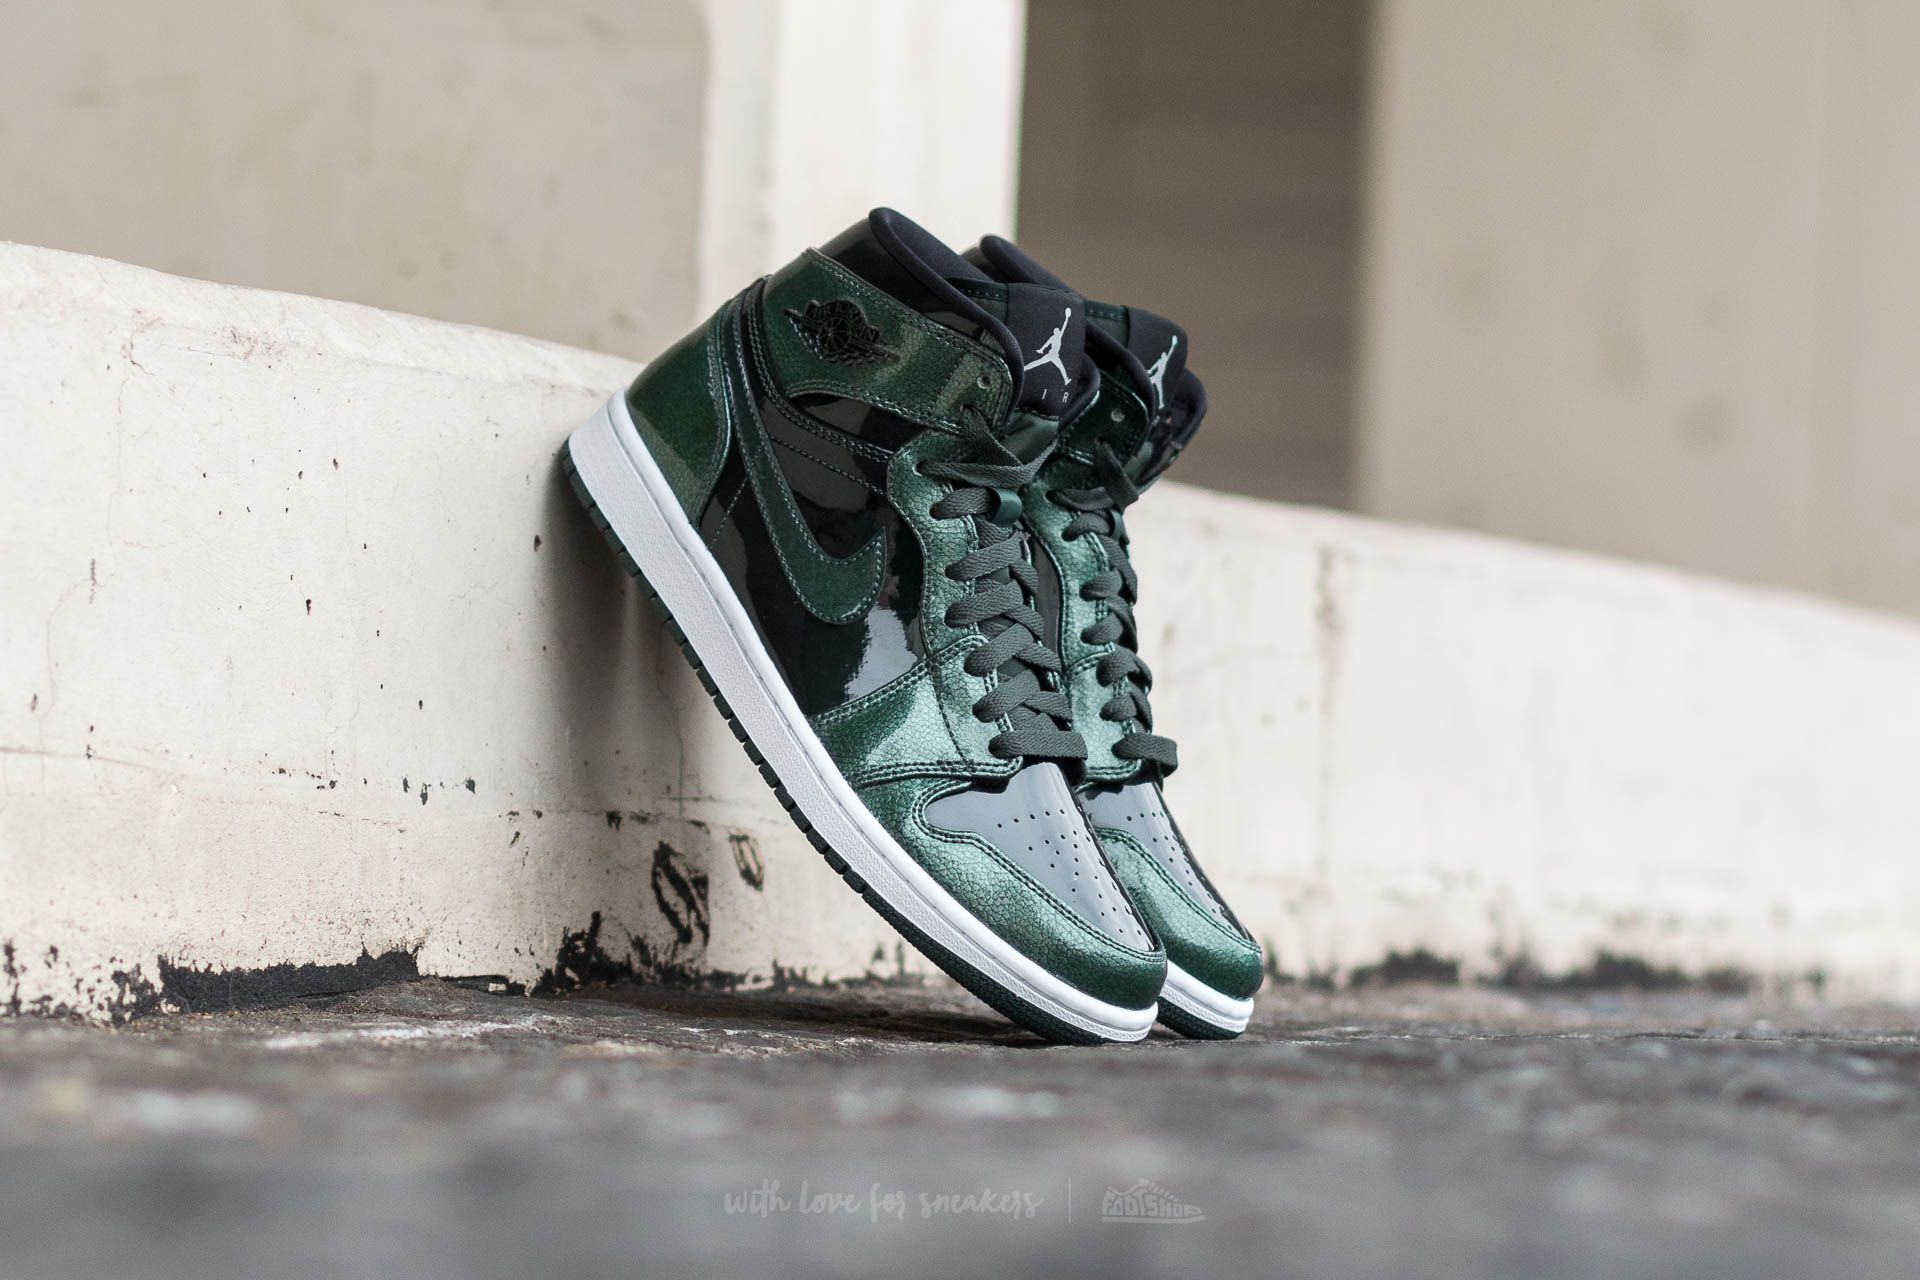 Air Jordan 1 Retro High Grove Green/ Black-White - 11985